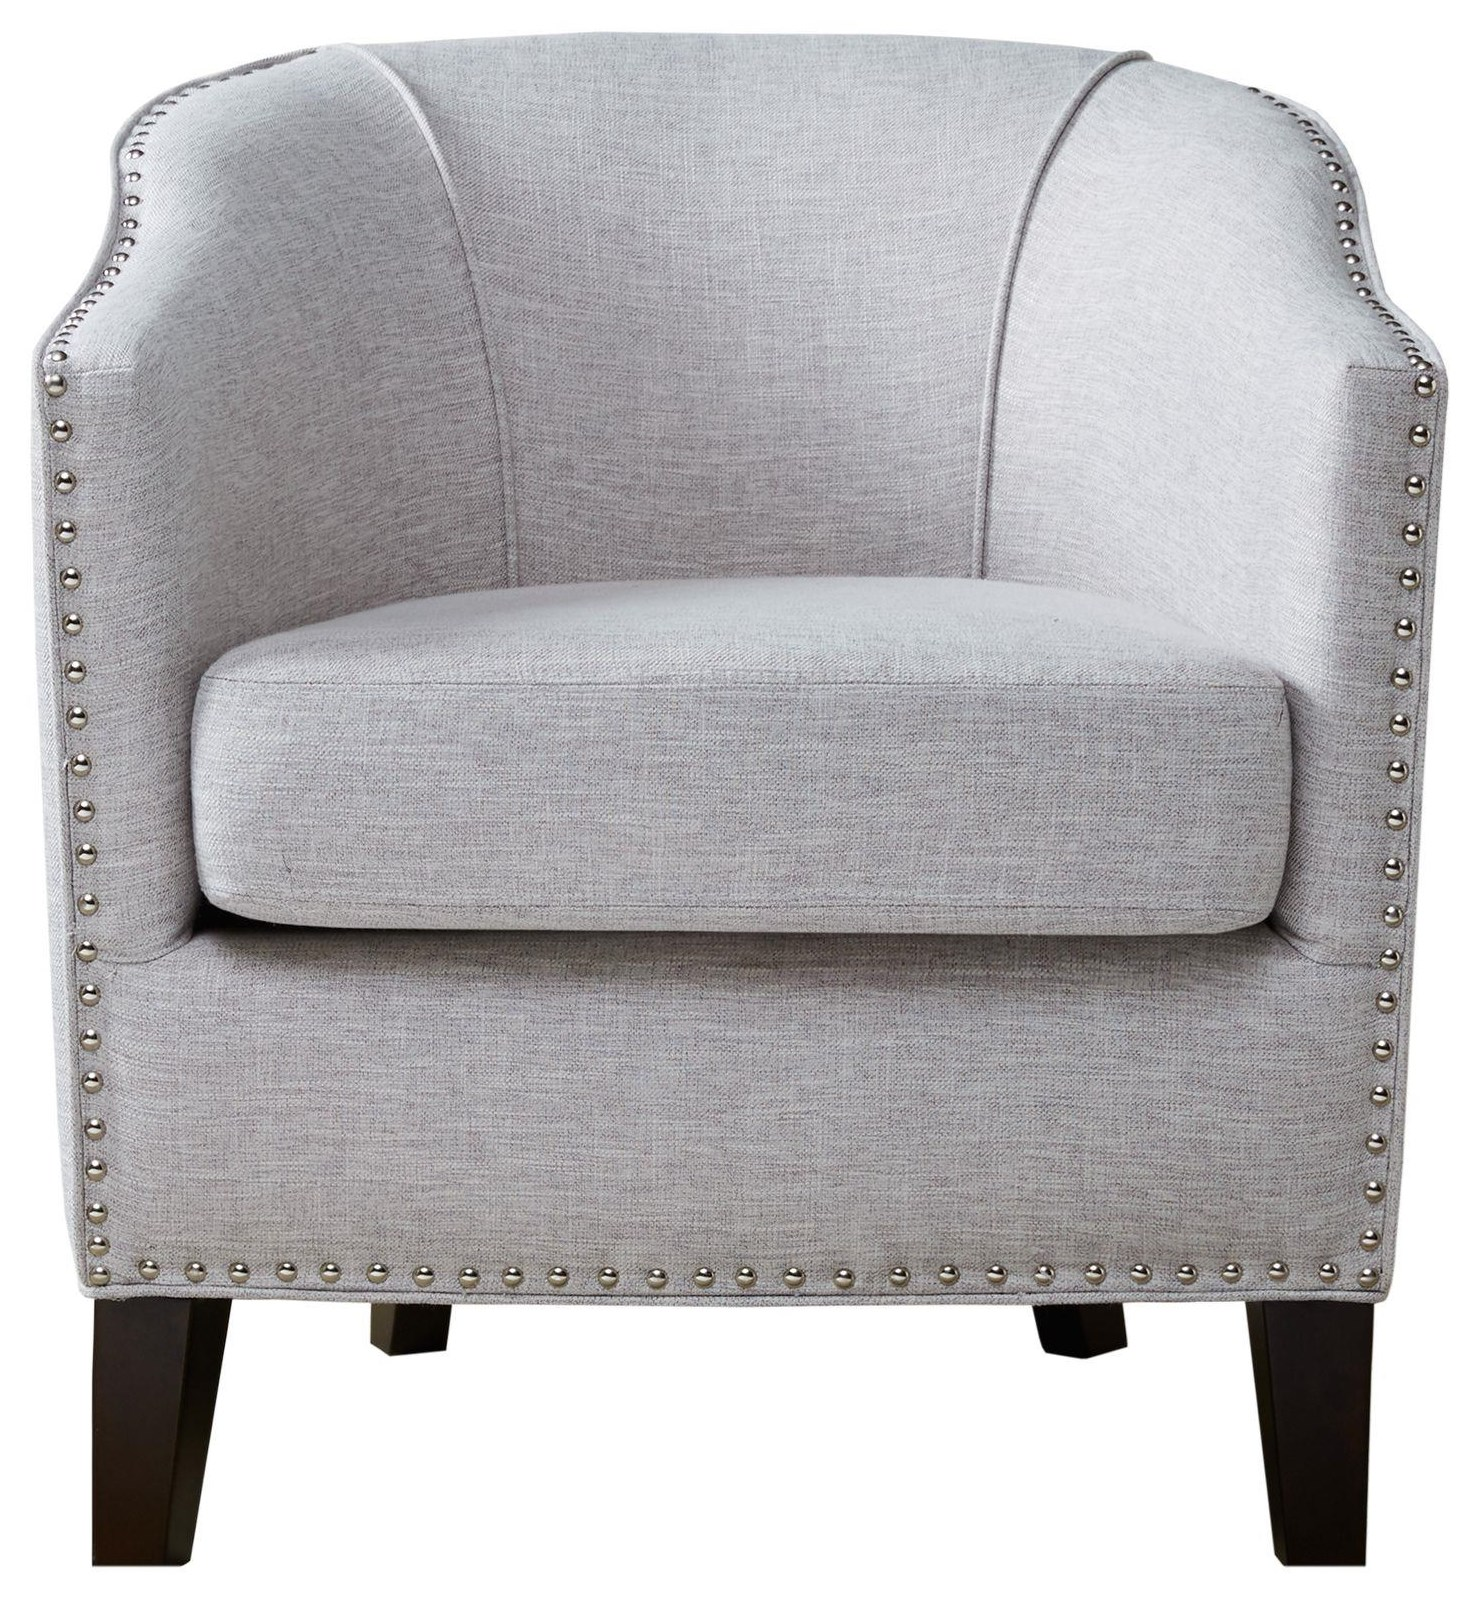 Home Accents Barrel Back Accent Chair at Belfort Furniture